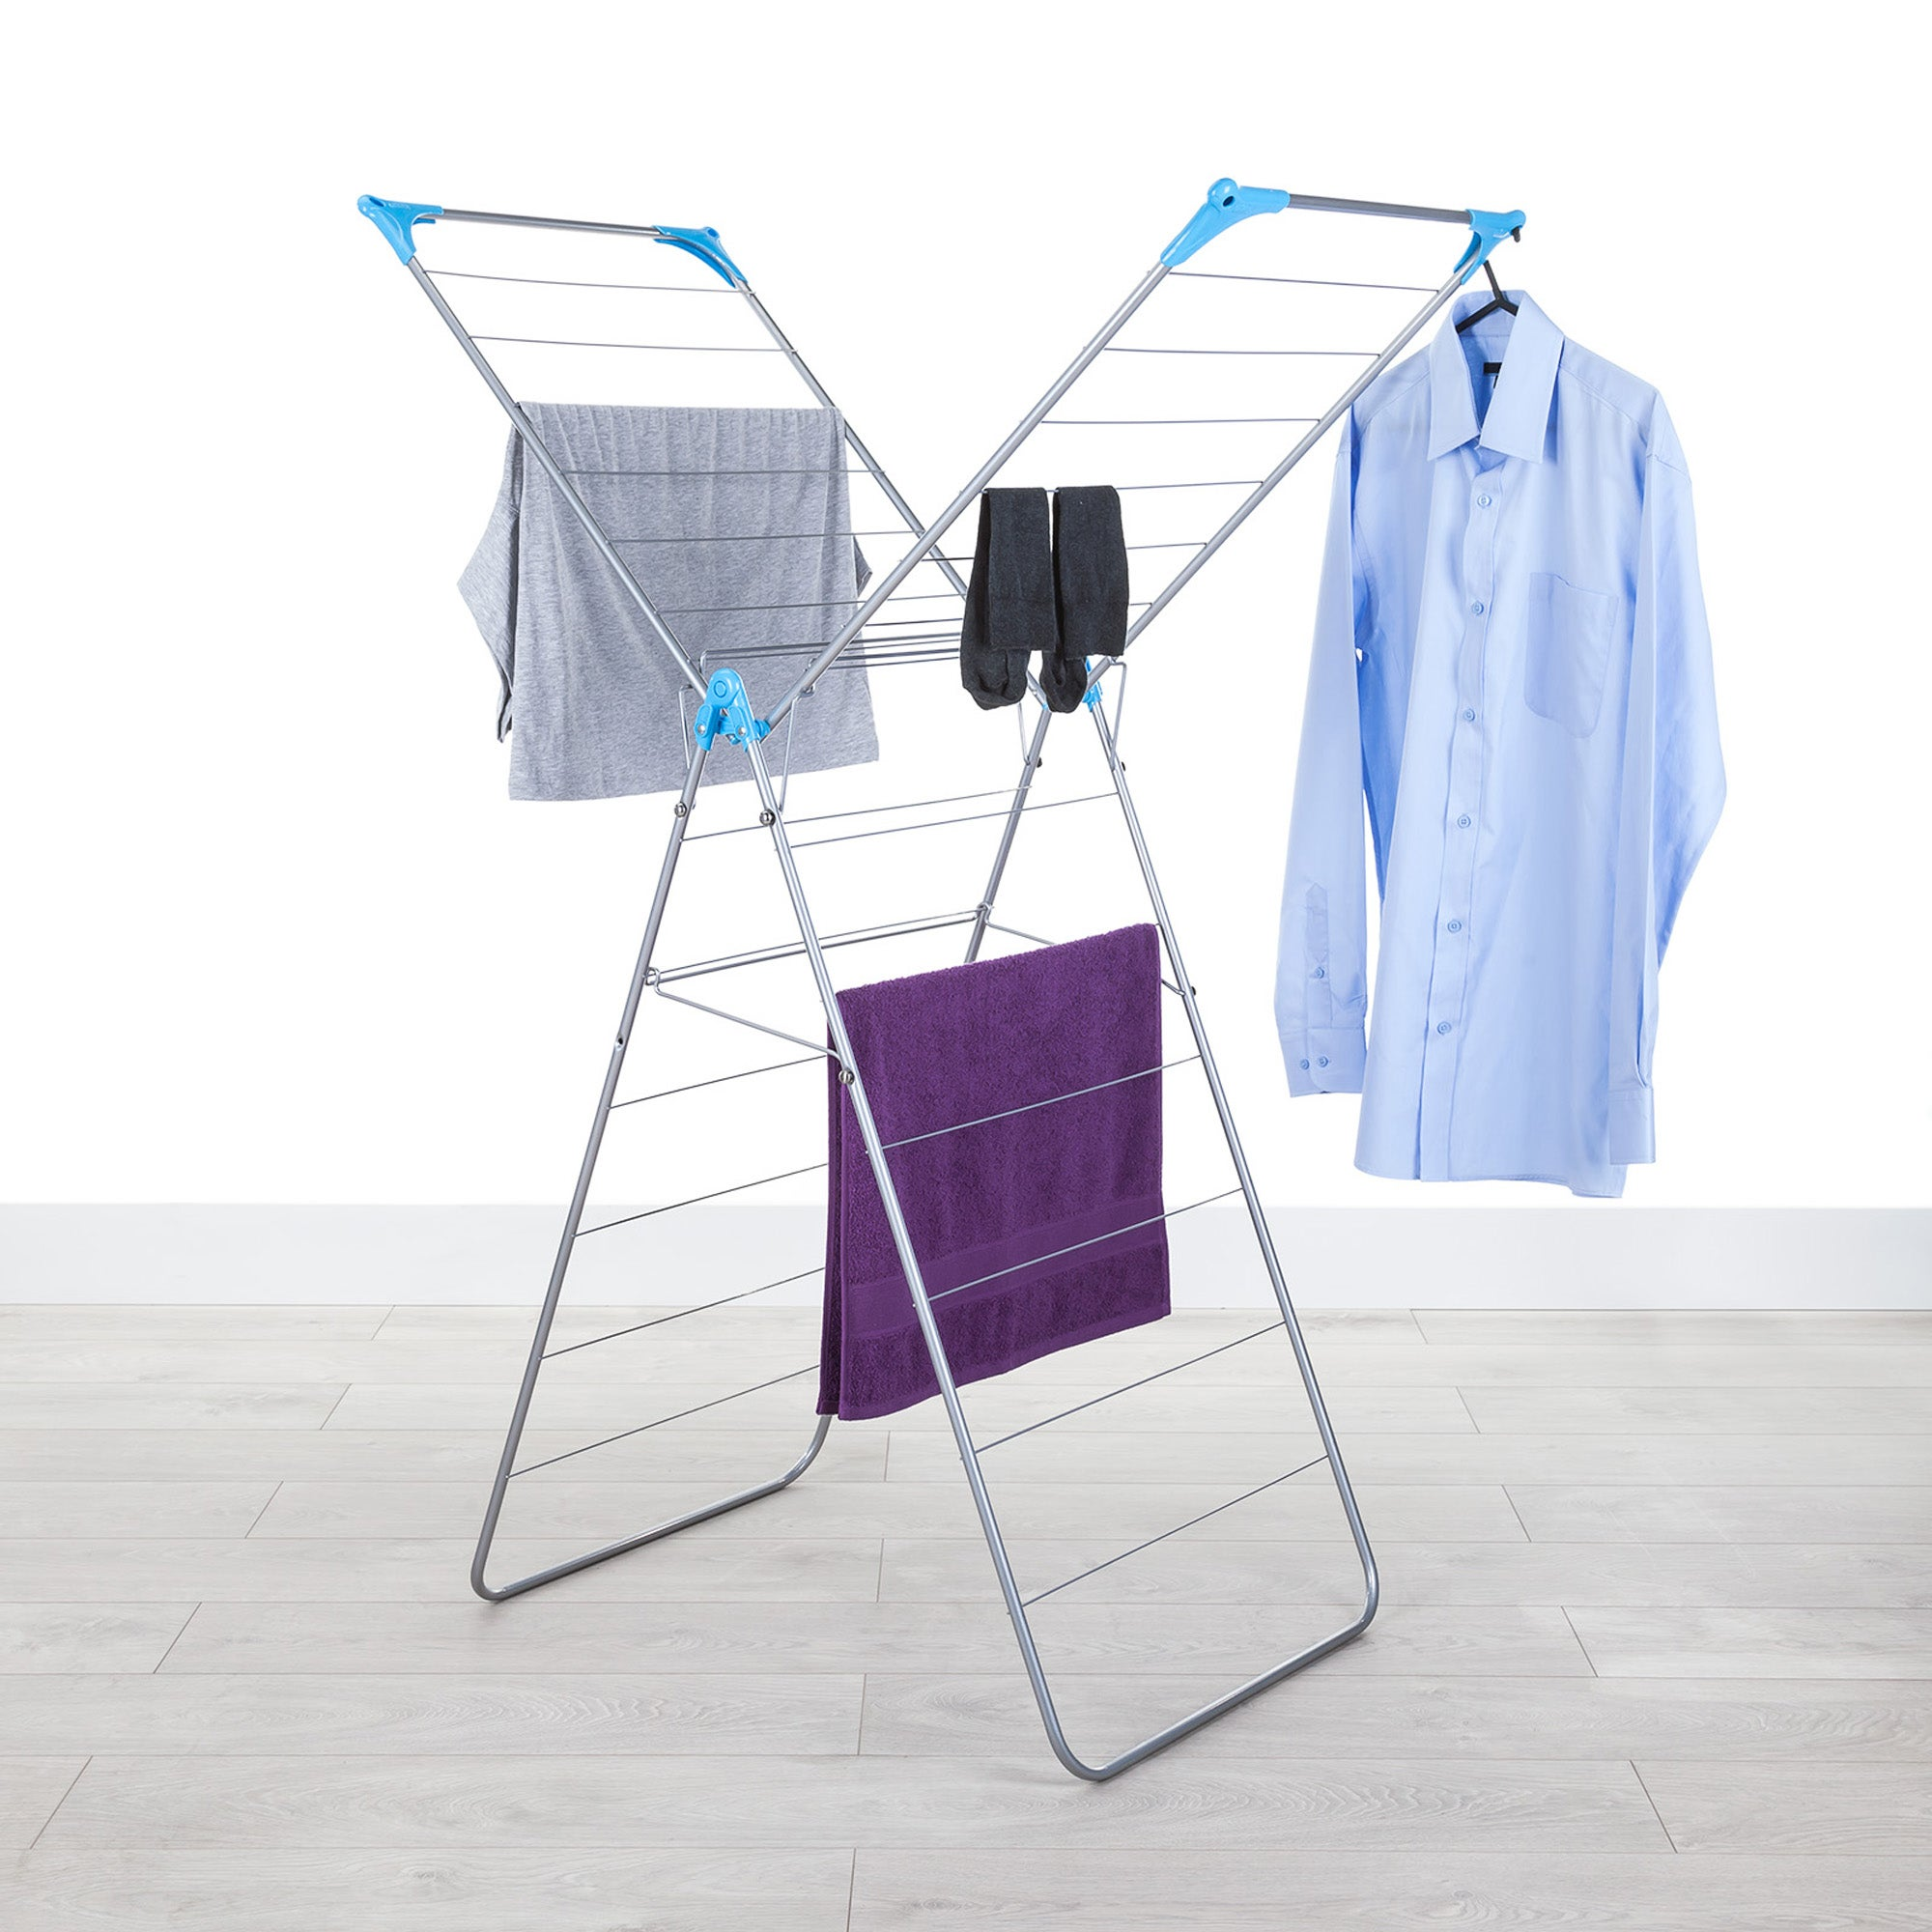 buy cheap indoor clothes airer compare products prices. Black Bedroom Furniture Sets. Home Design Ideas